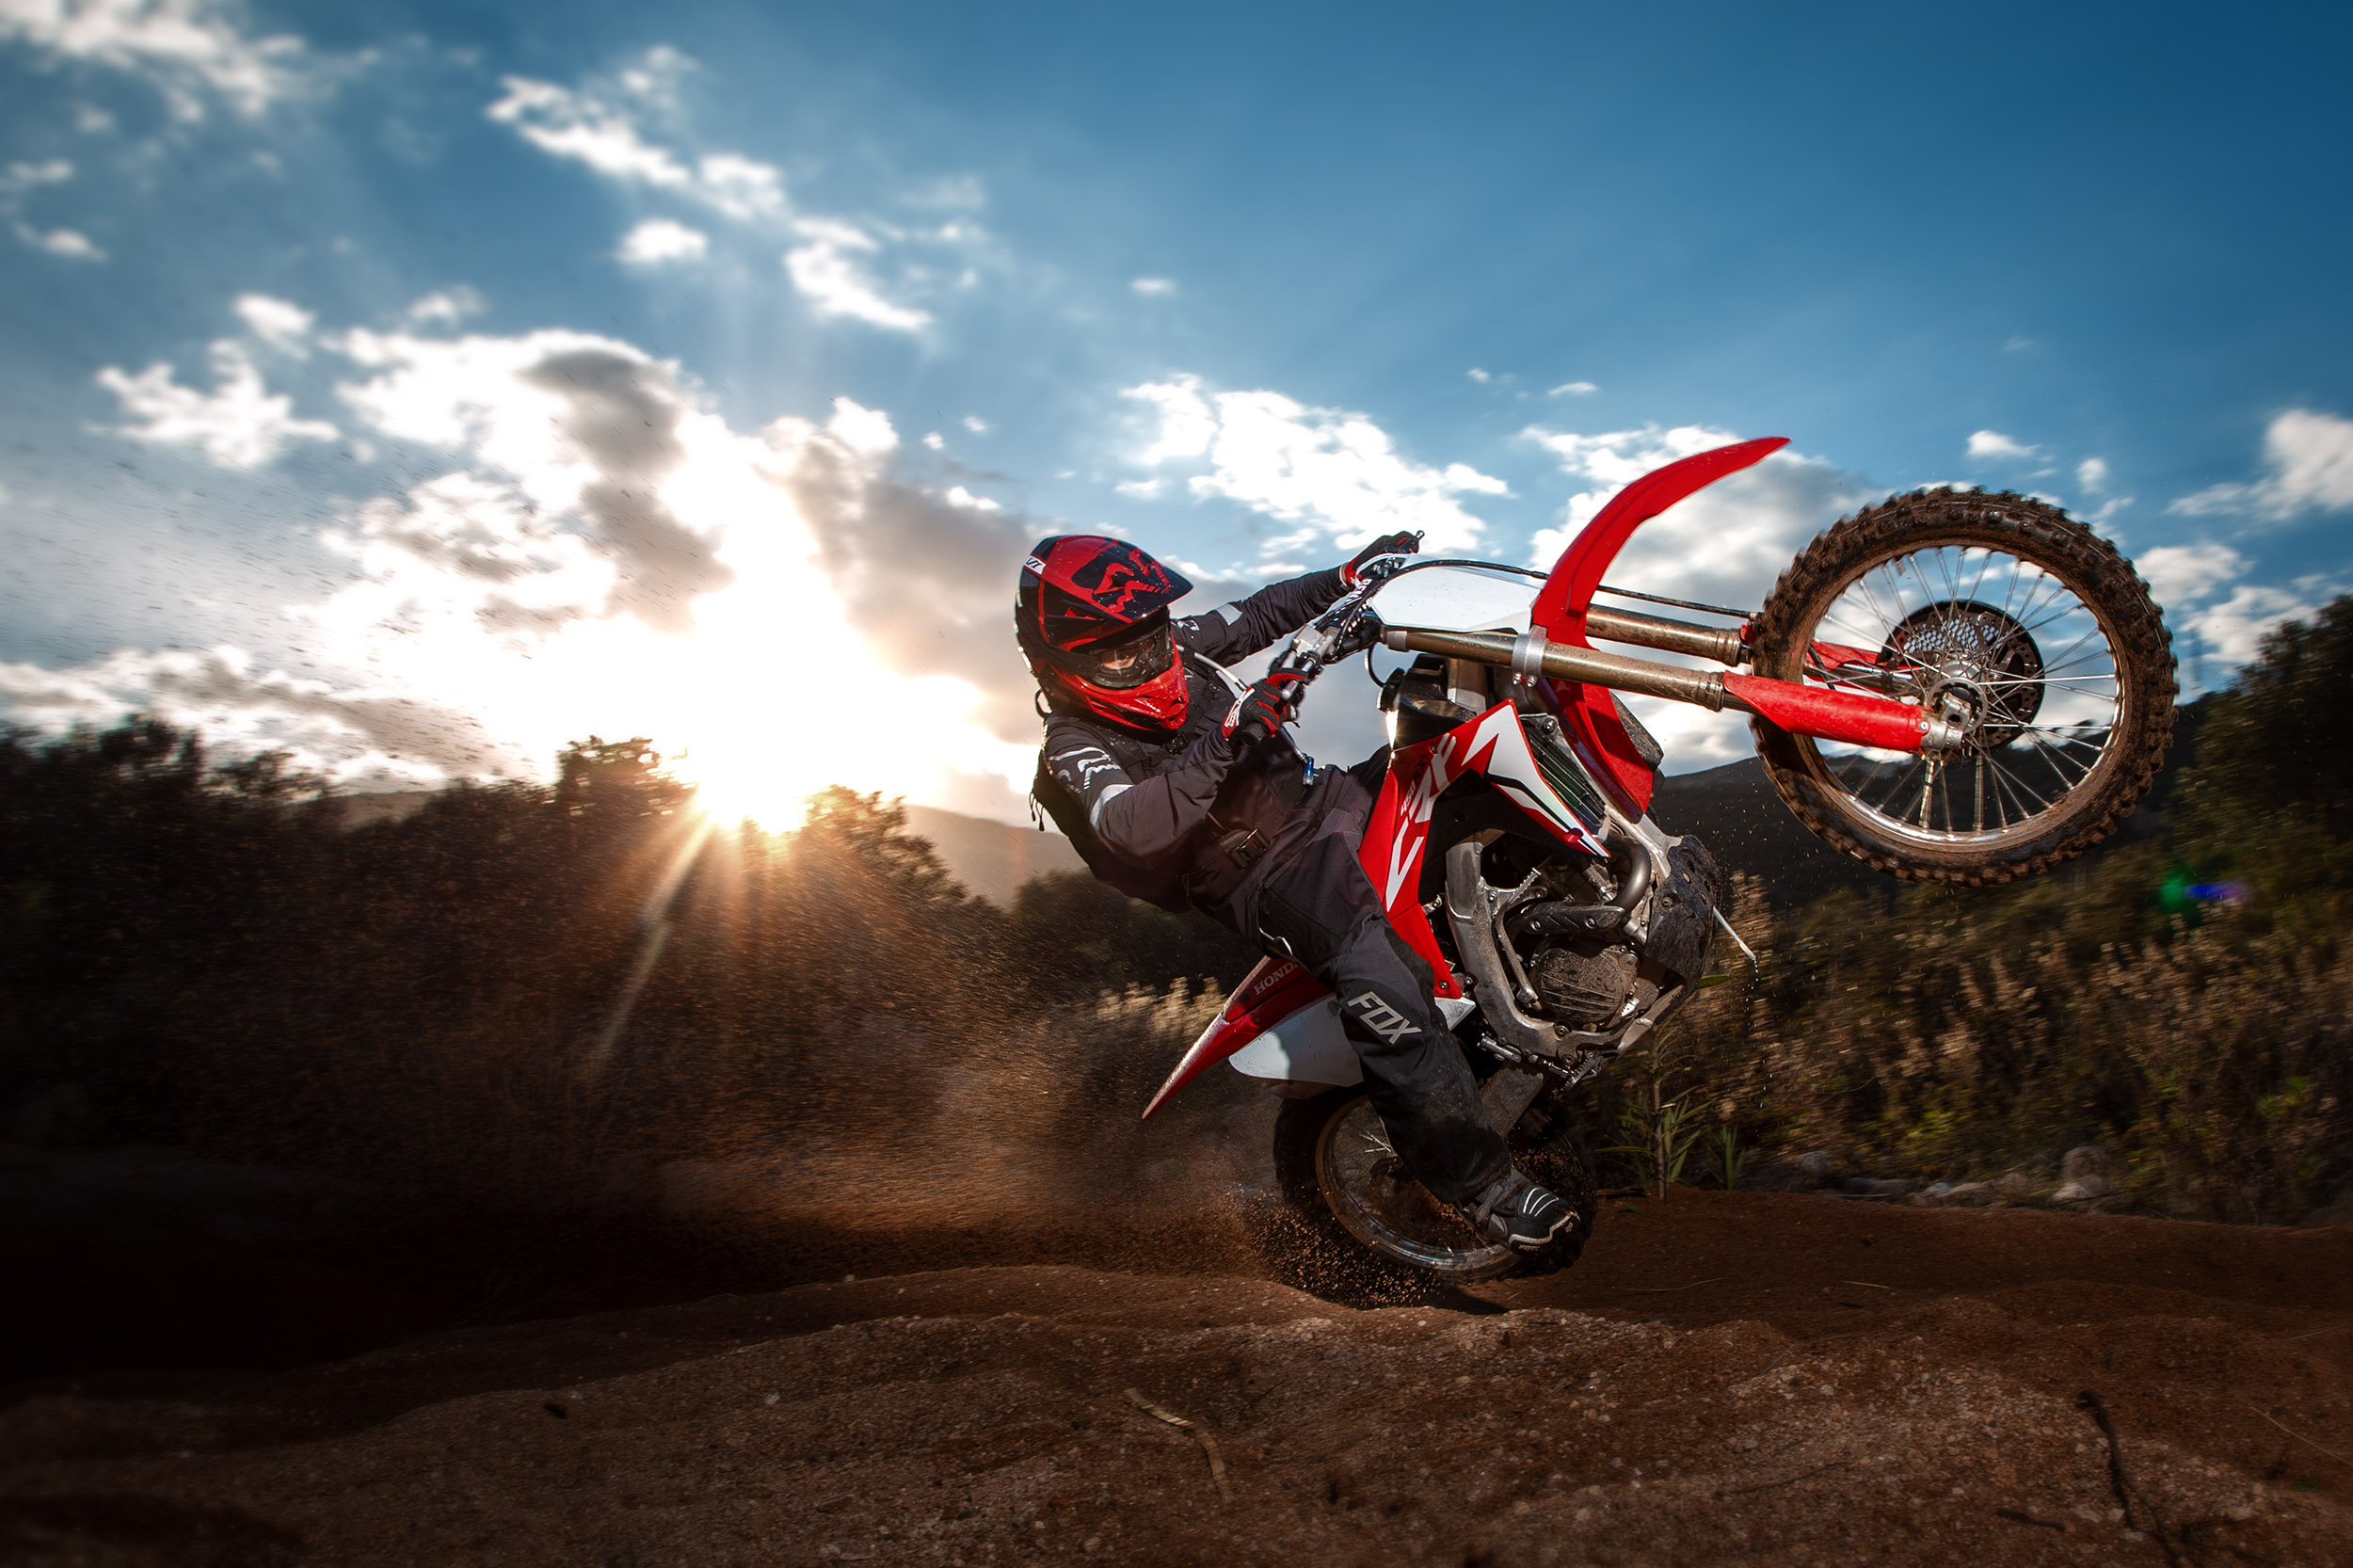 crf450_sun-Modifica-2.jpg